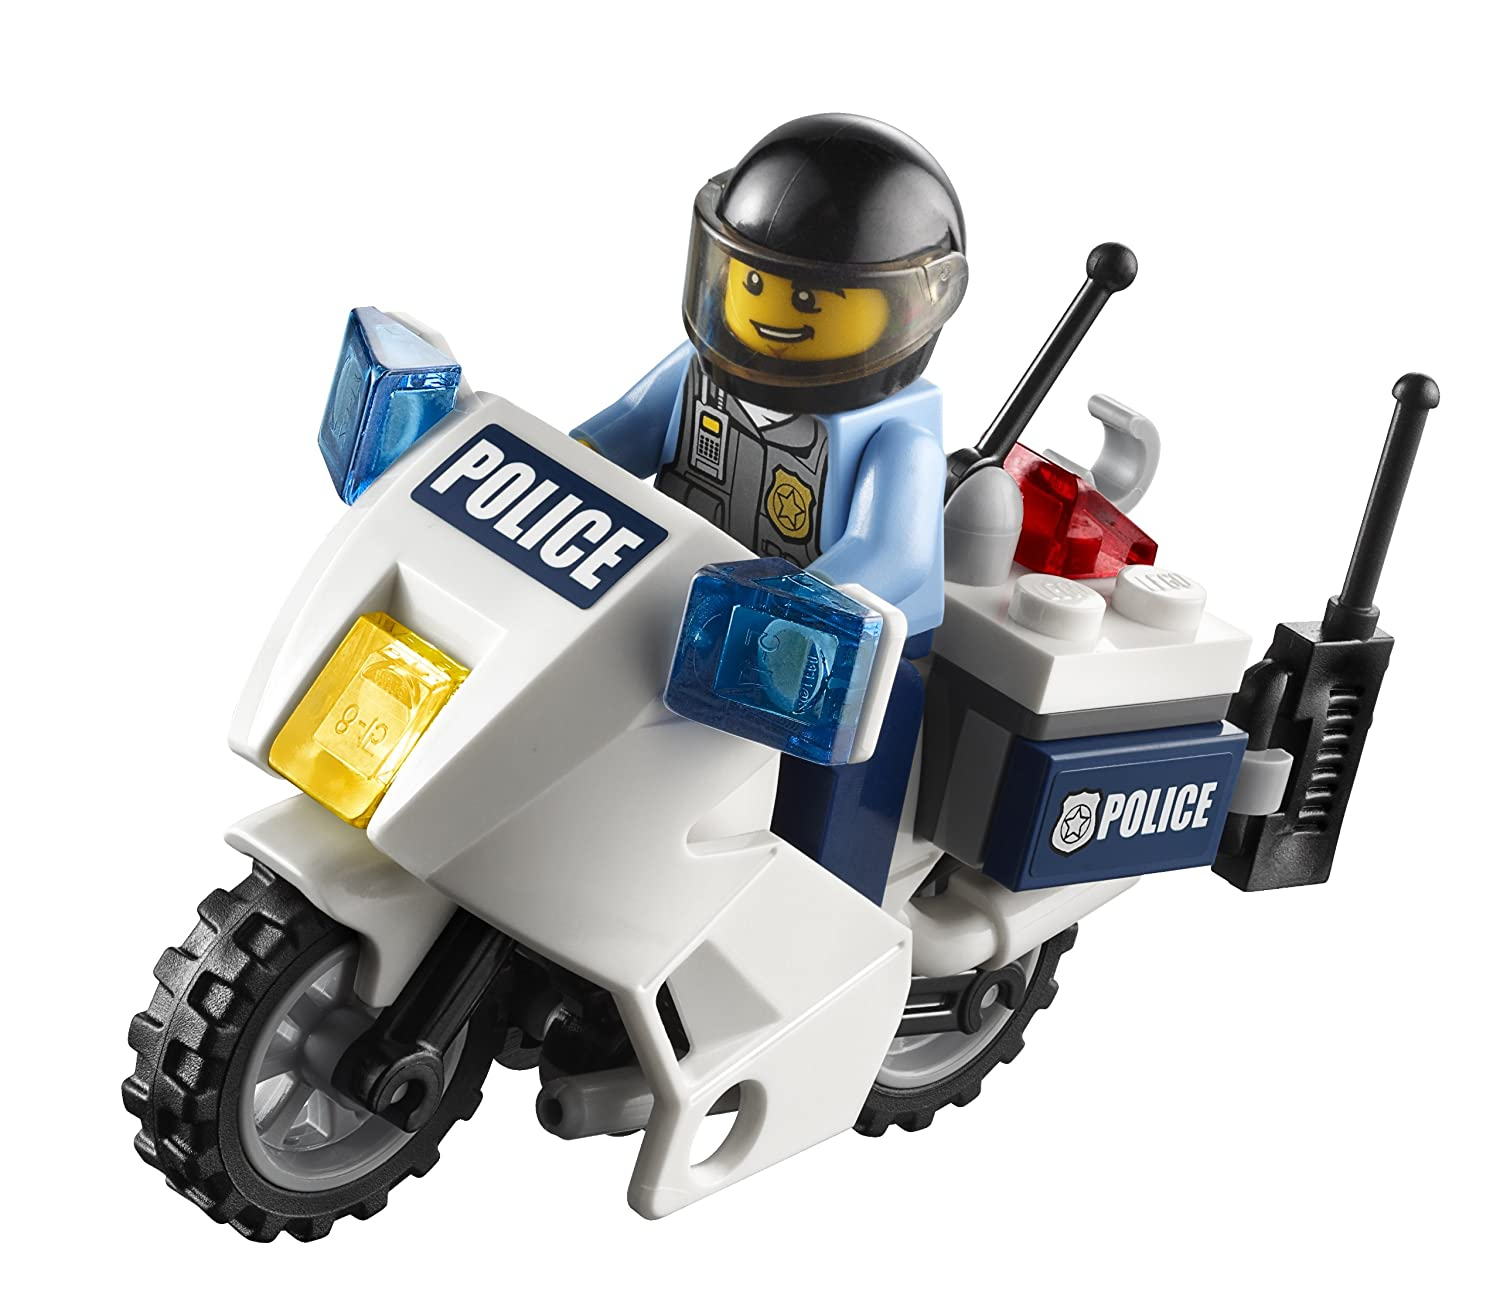 lego city police high speed chase 60007 new free shipping 673419188036 ebay. Black Bedroom Furniture Sets. Home Design Ideas